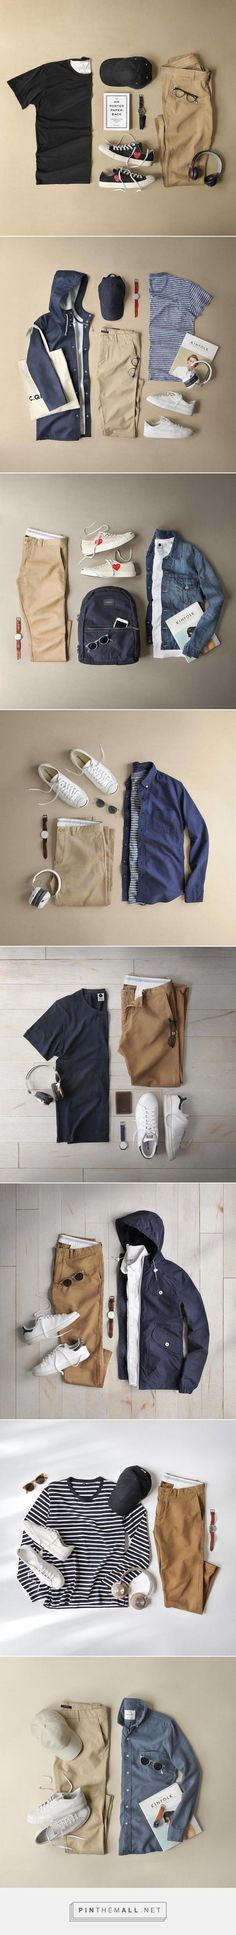 How To Wear Khaki CHINOS for men. #mensfashion